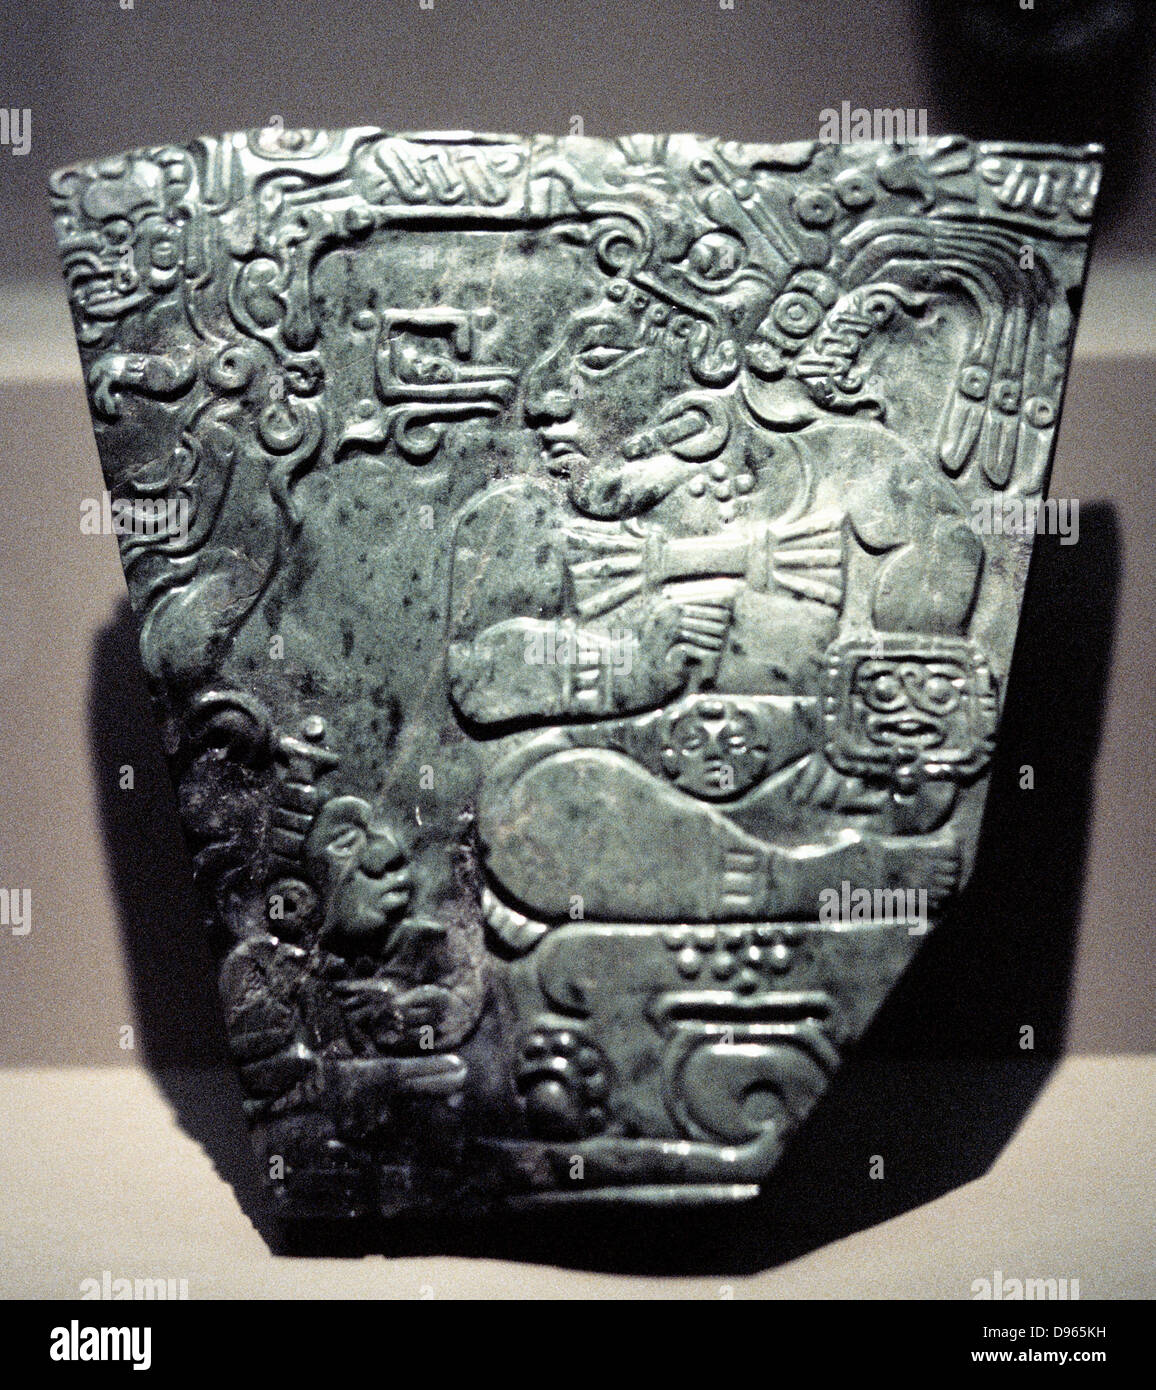 Jade plaque showing Mayan king seated, 400-800. - Stock Image